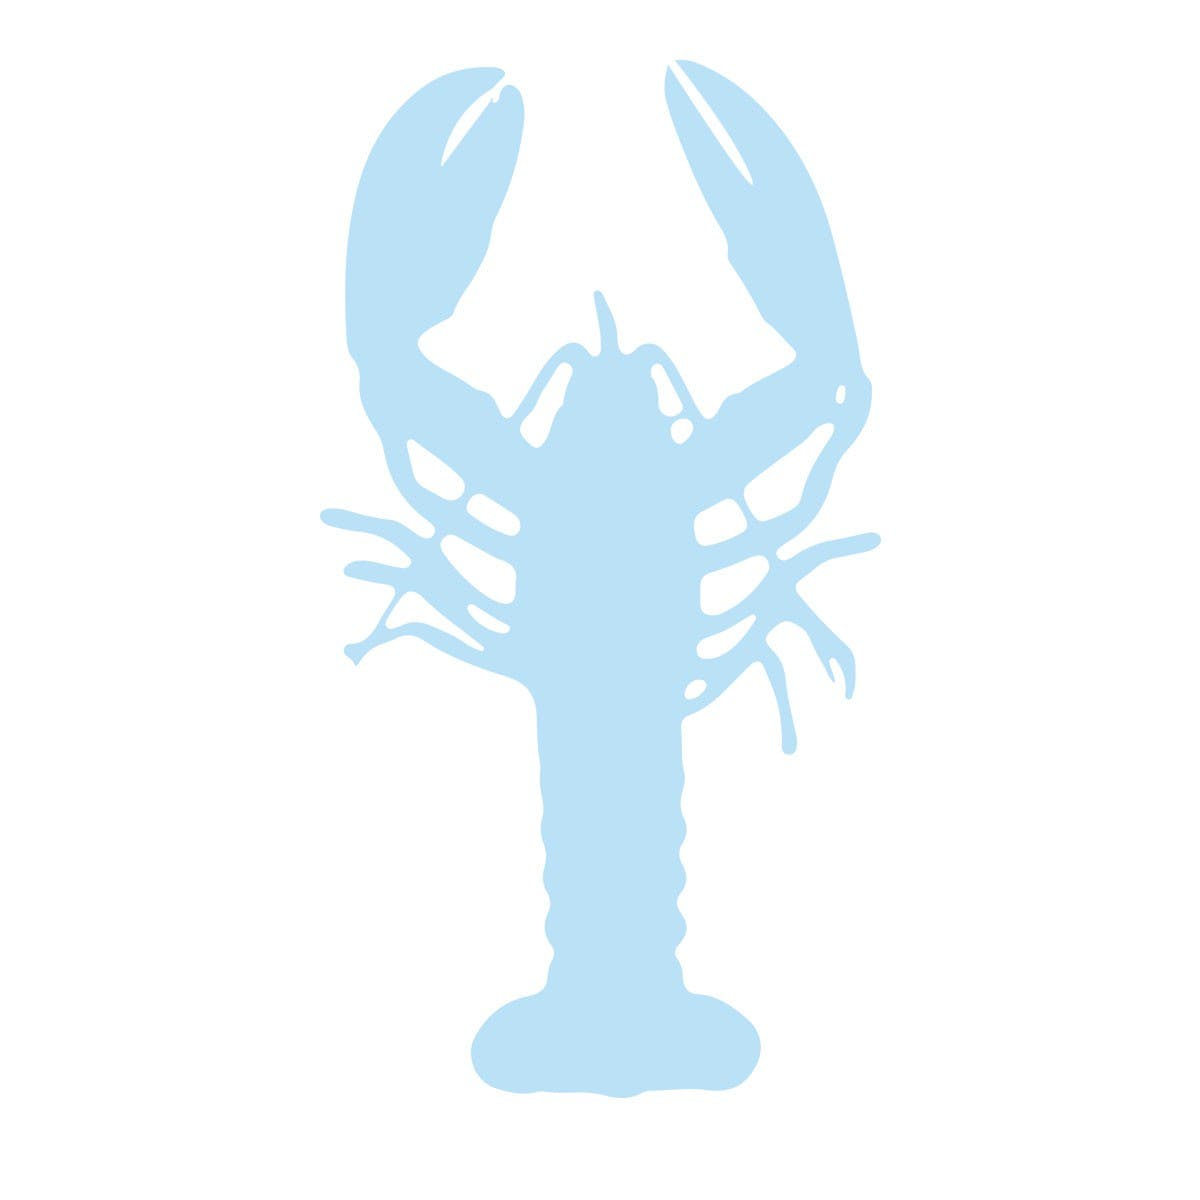 Lobster Image - 1